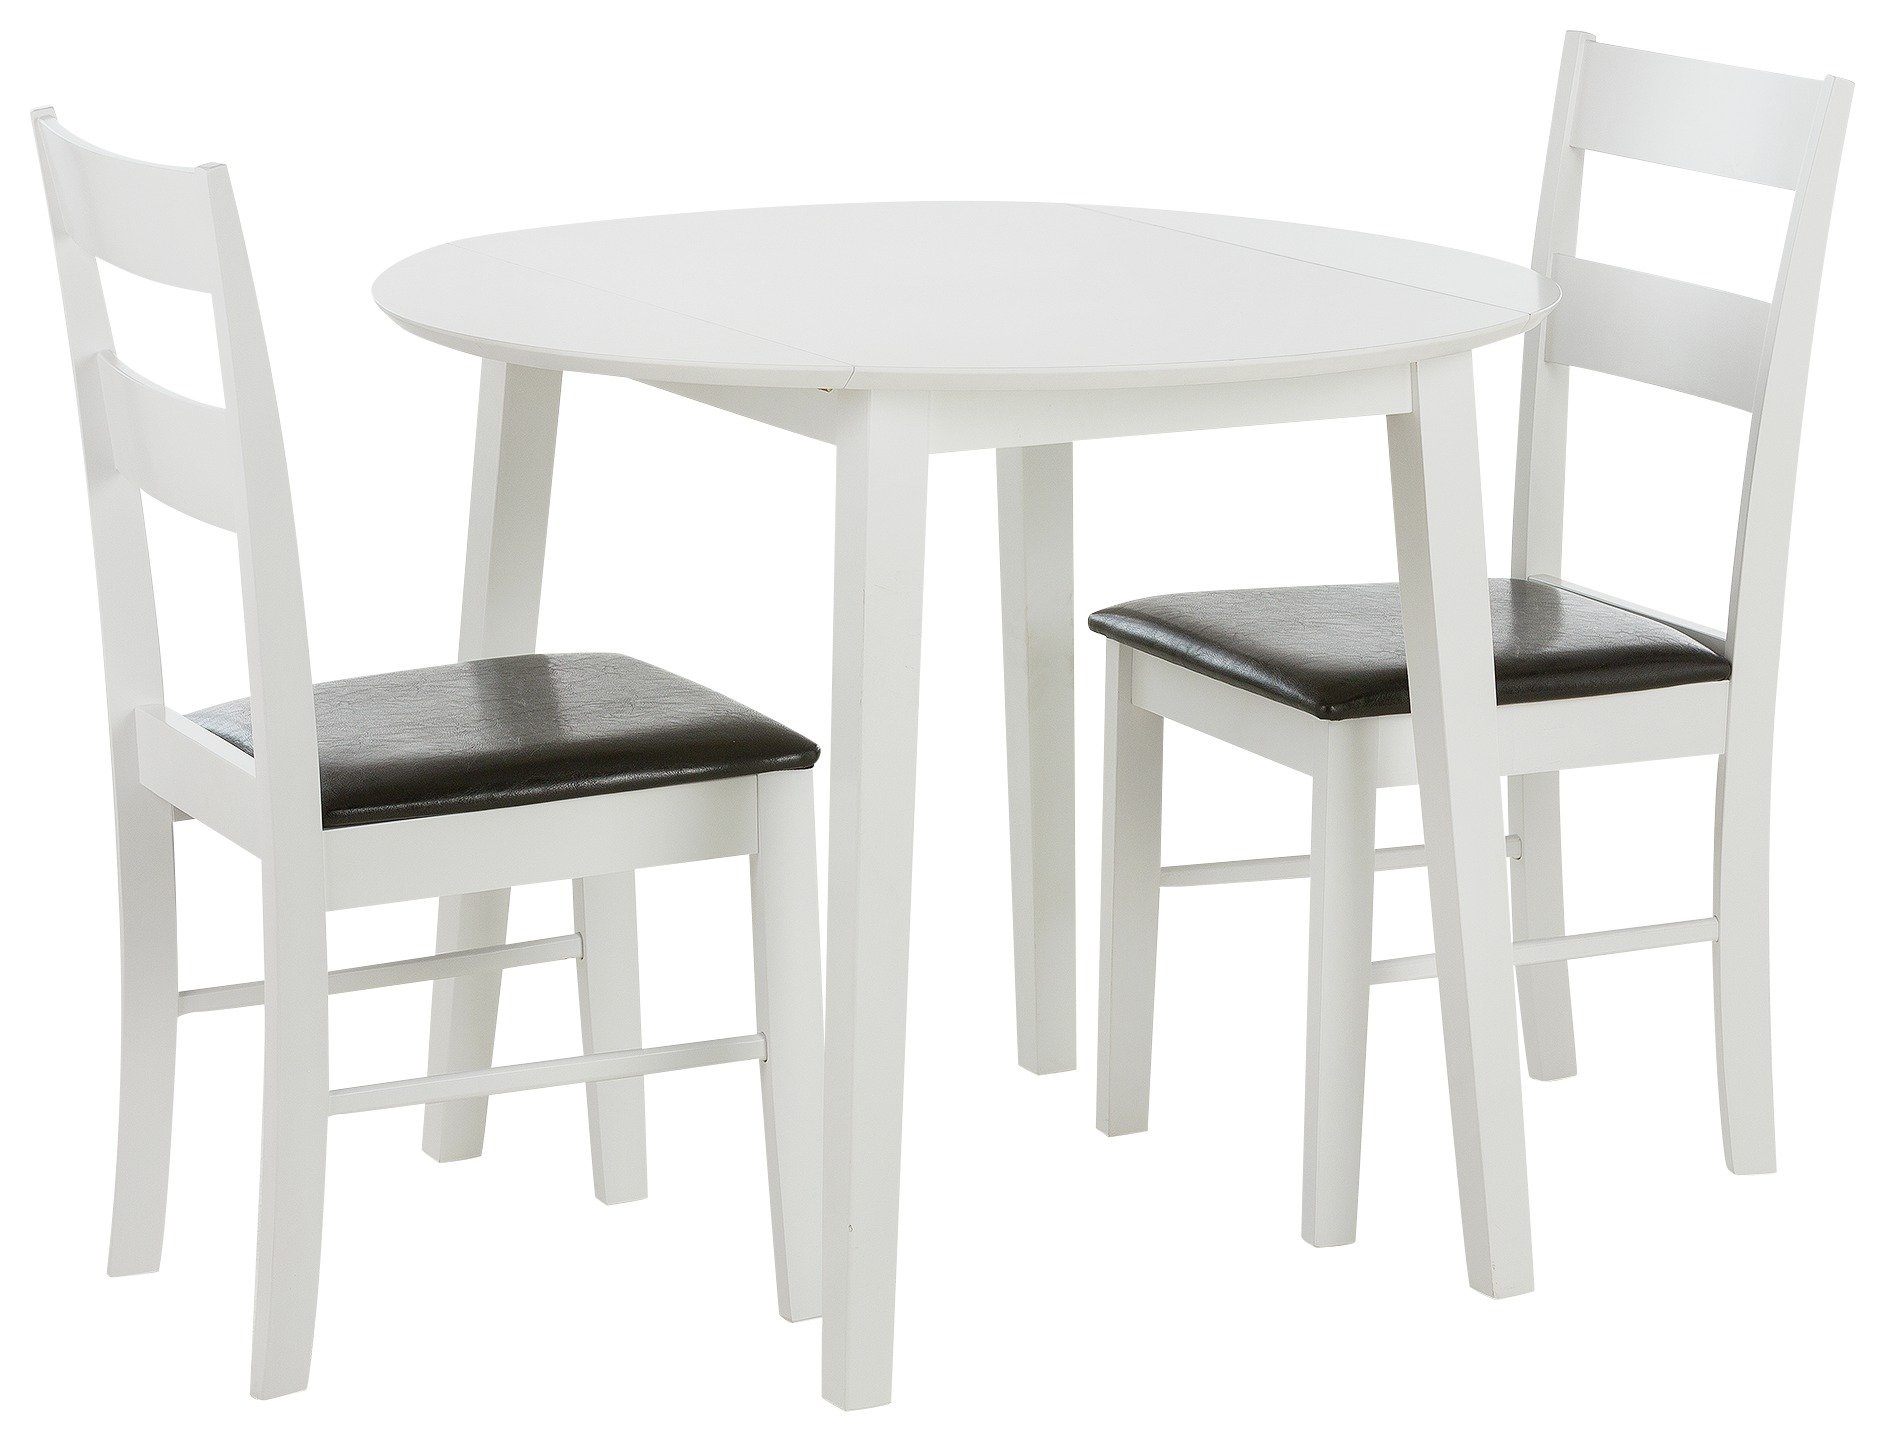 Home Wyton Round Drop Leaf Table Amp 2 Chairs White